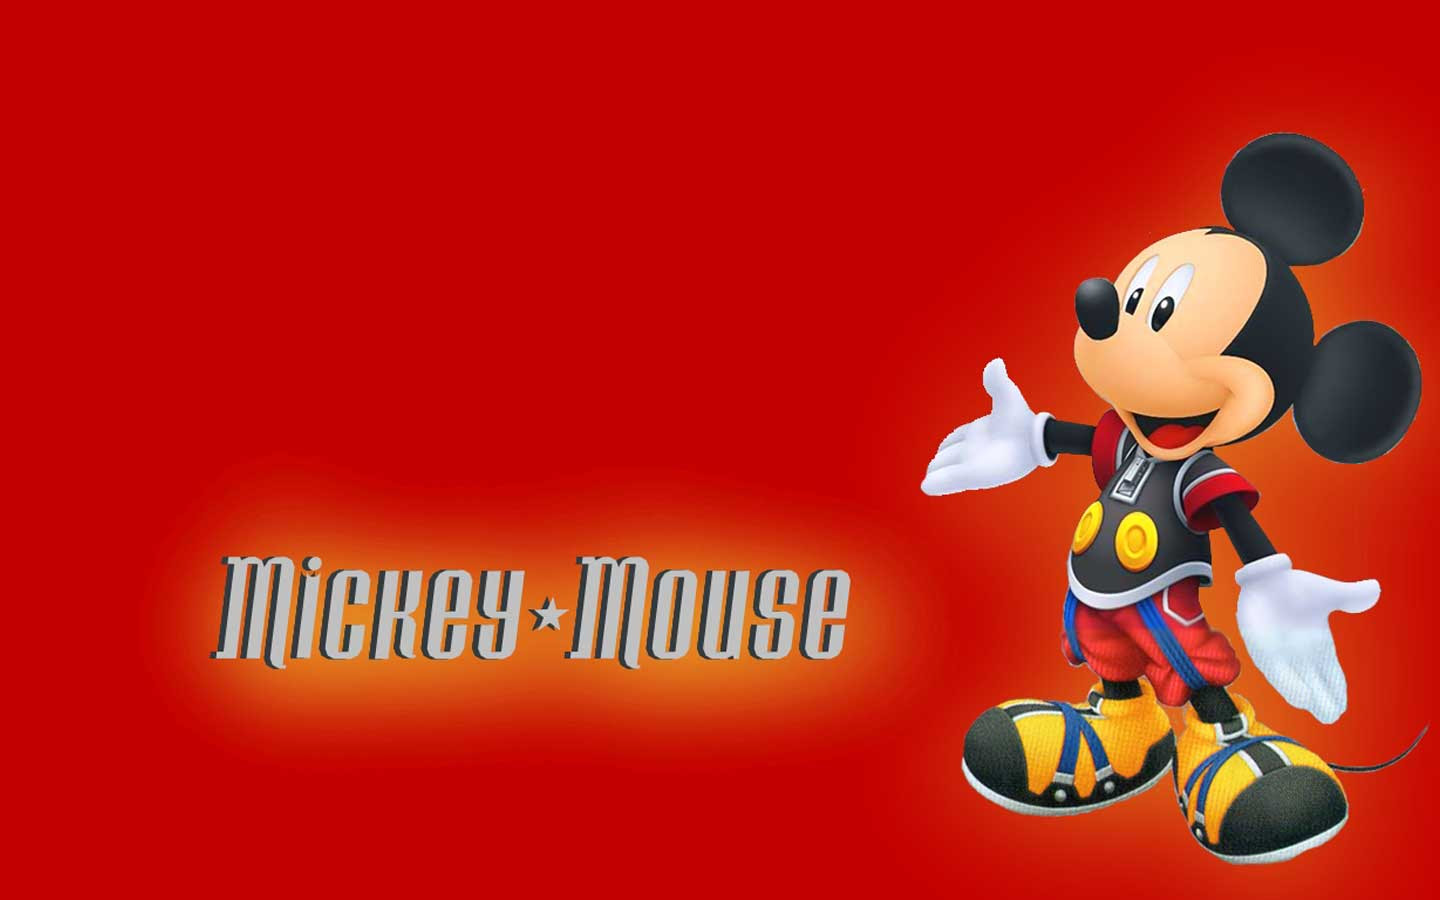 Mickey Mouse Wallpapers For Android Iphone And Ipad 1440x900